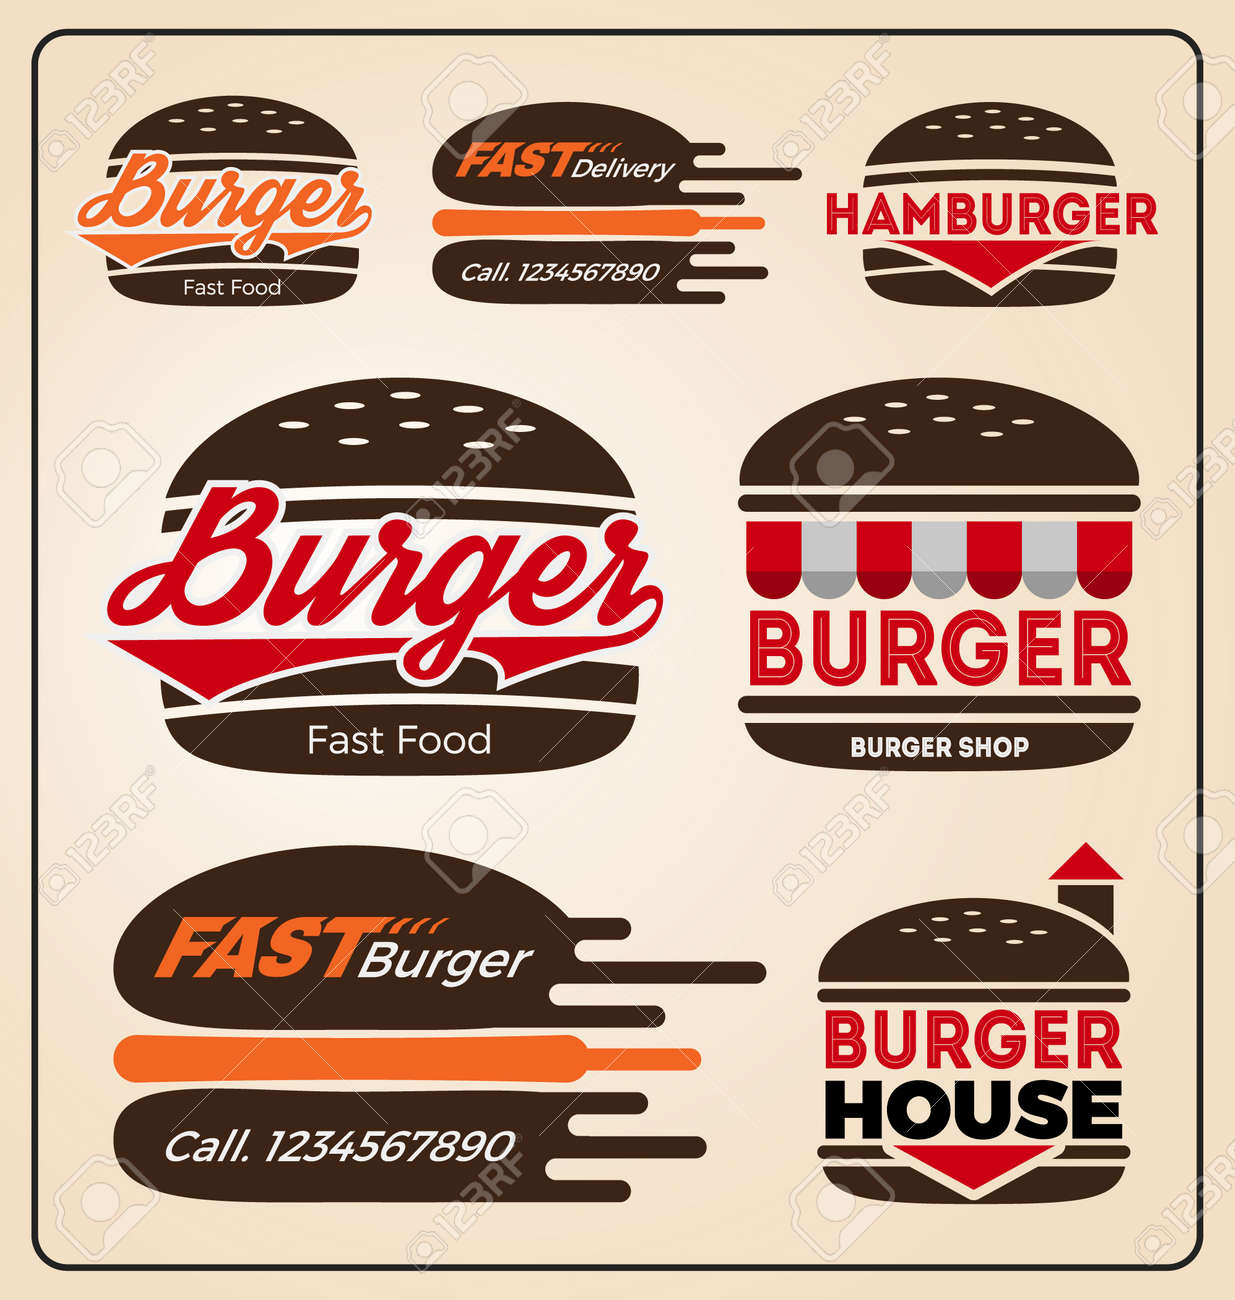 Set of burger shop icon logo design for branding sticker decoration product